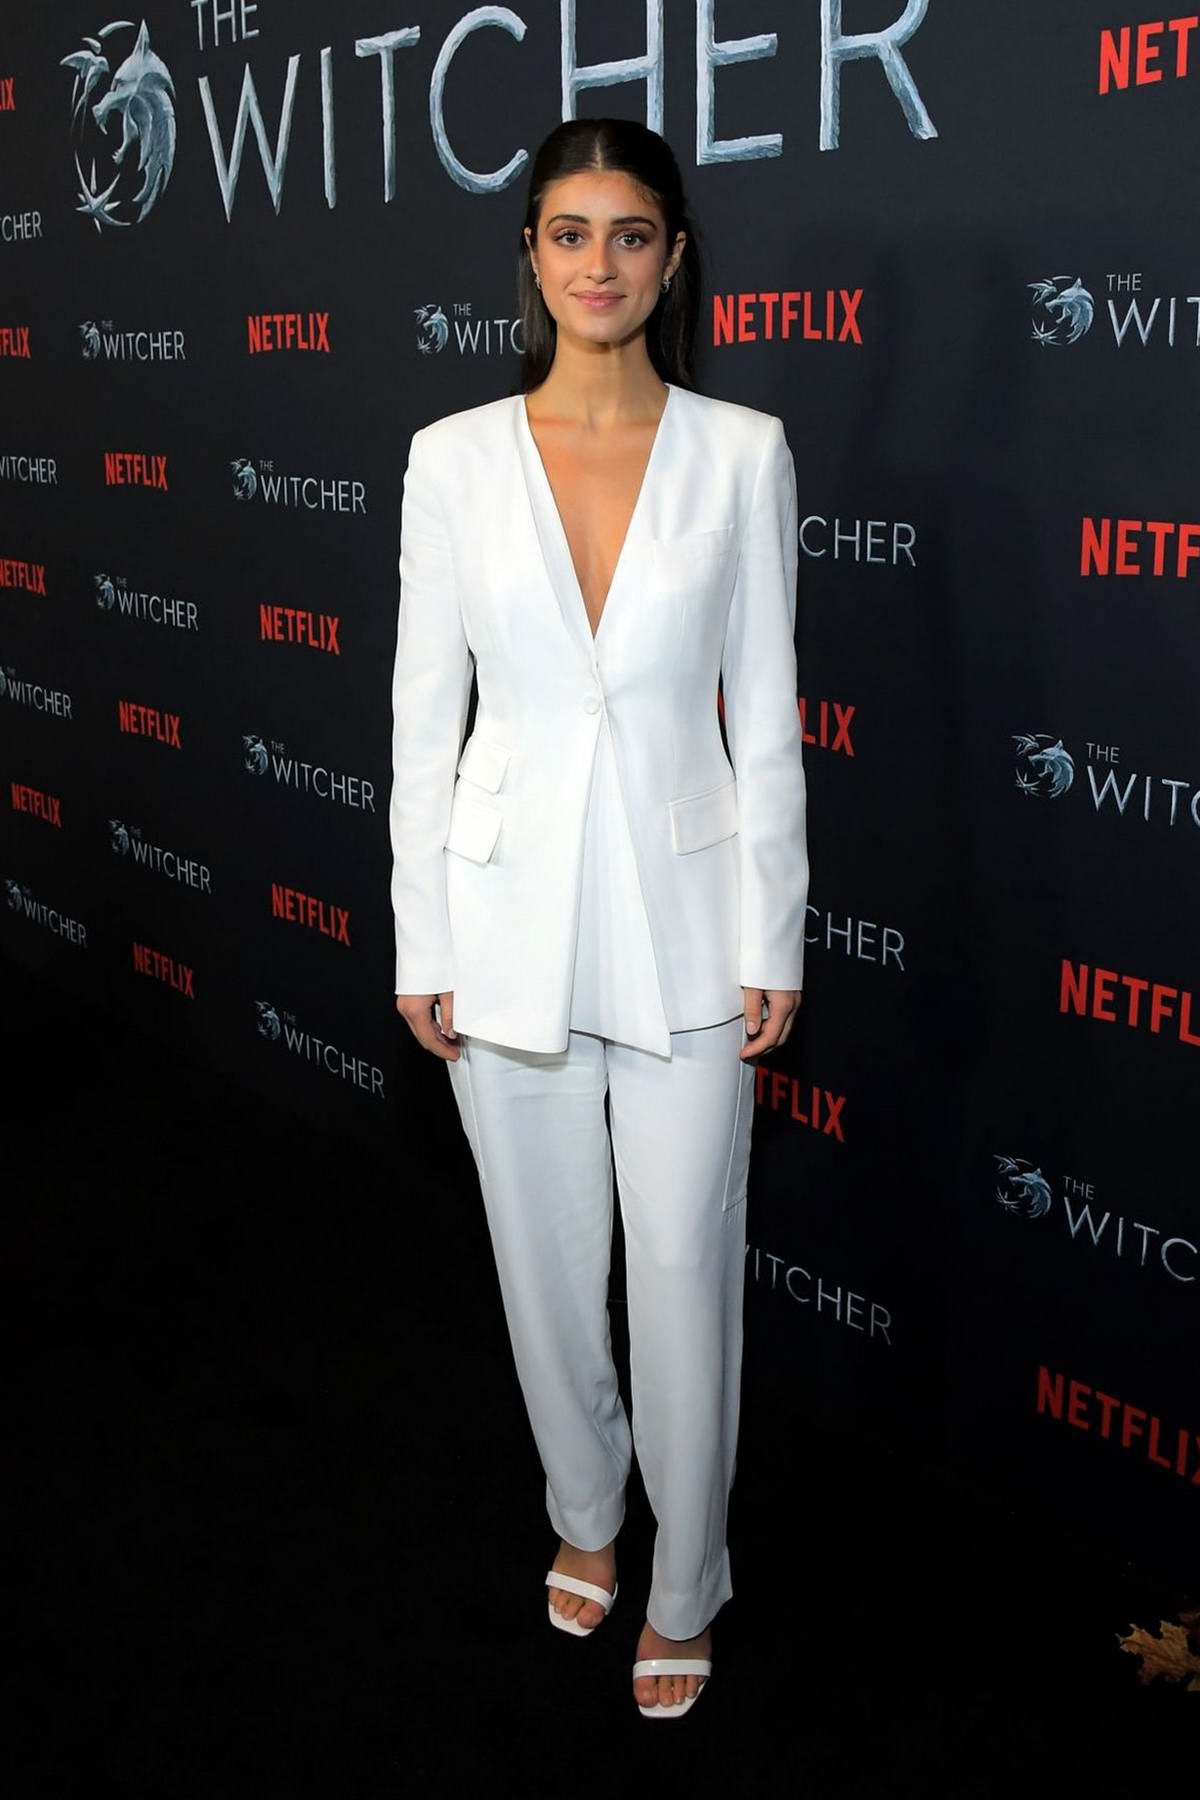 Anya Chalotra attends 'The Witcher' Photocall in Hollywood, California